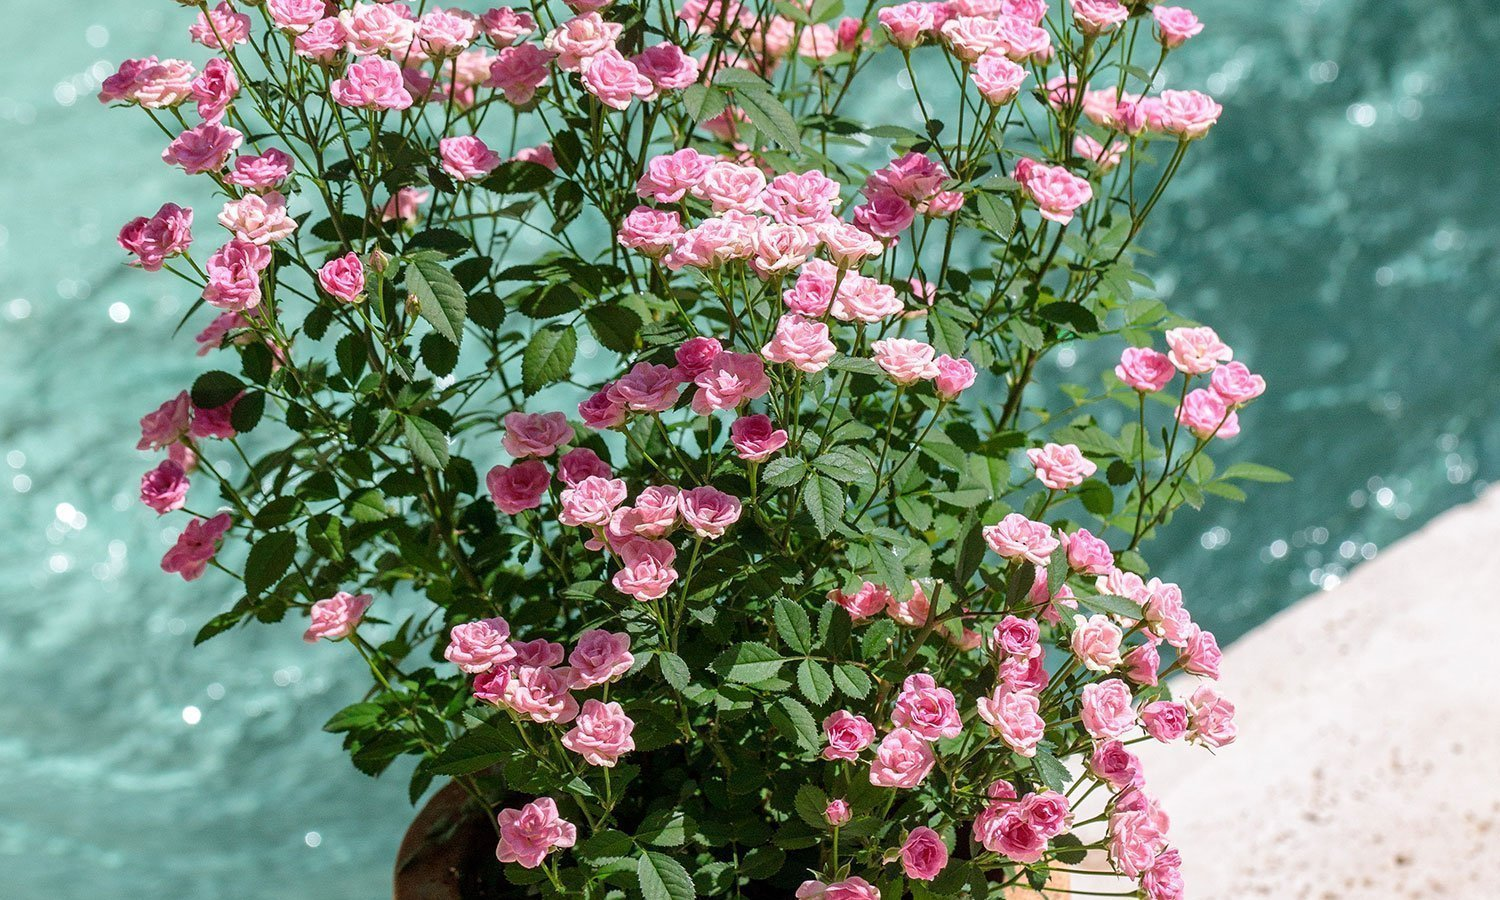 Meilland Roses varietes jardin Lilly Rose Wonder 5